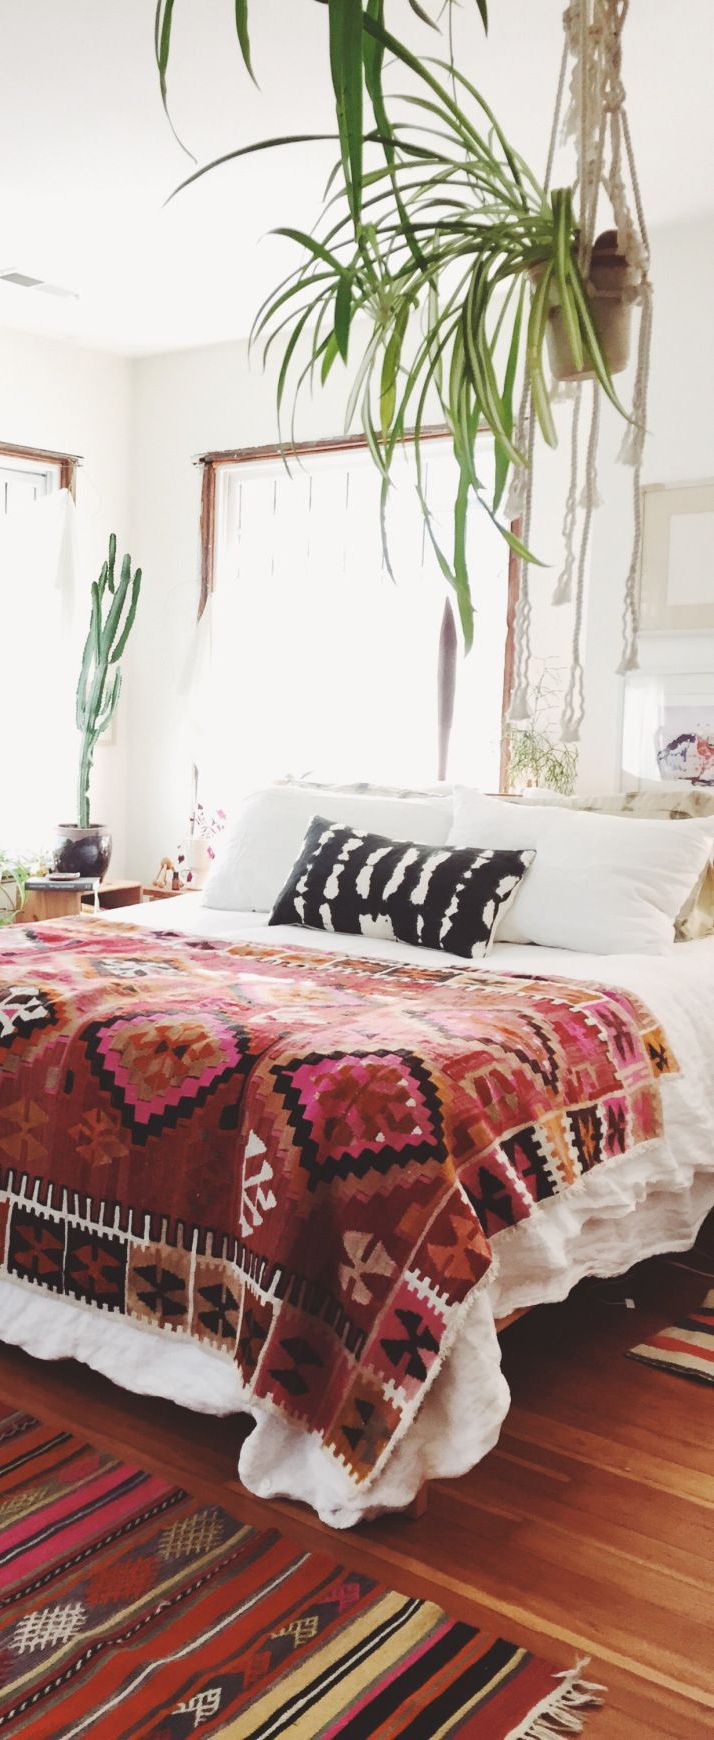 Bohemian Decor Amp How To Decorate Using The Bohemian Style Guest Bedroom Design Bohemian